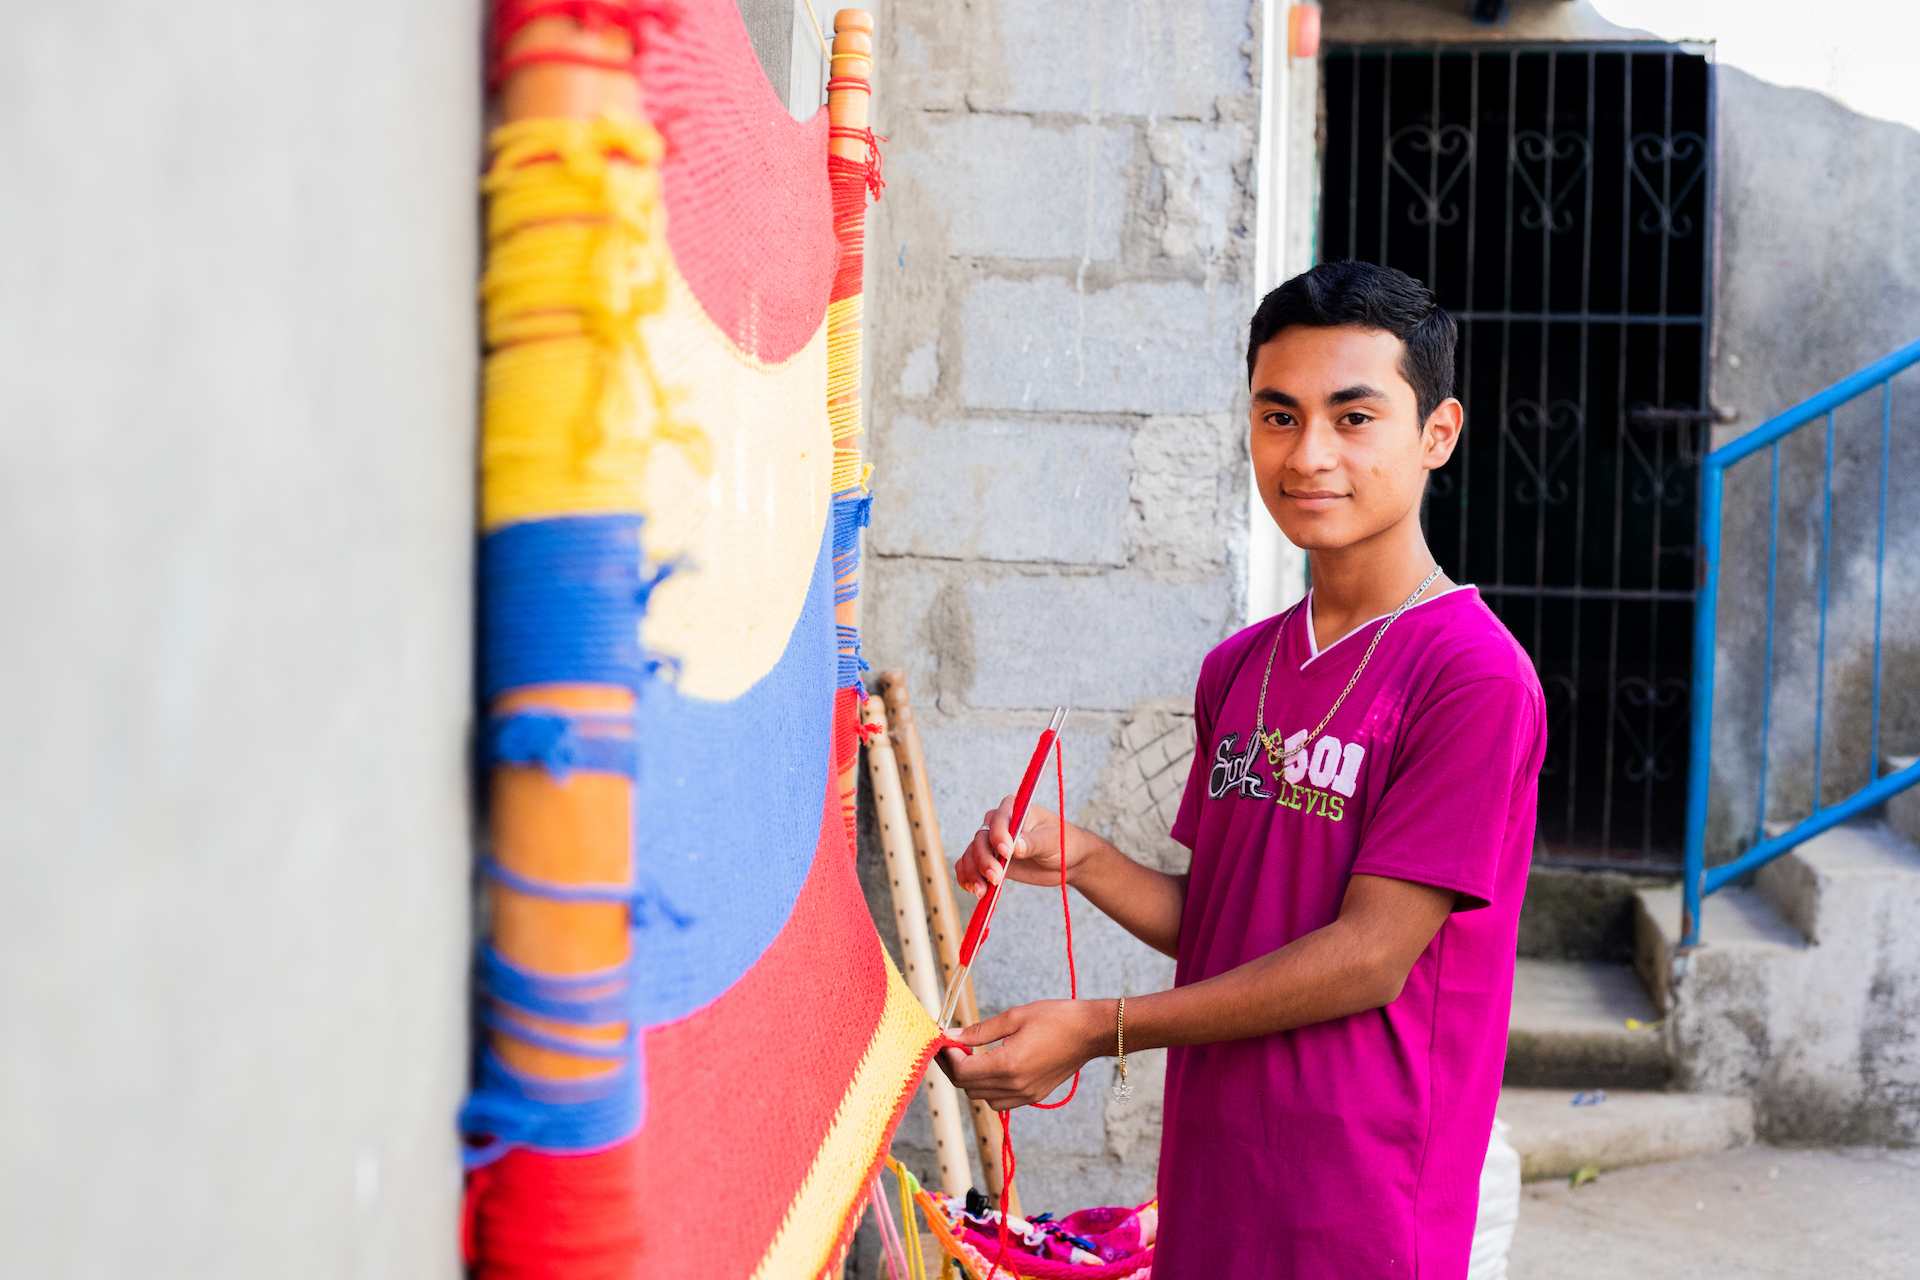 Ariel stands in a purple t-shirt, working on a red, yellow and blue hammock hanging on the wall in front of him.